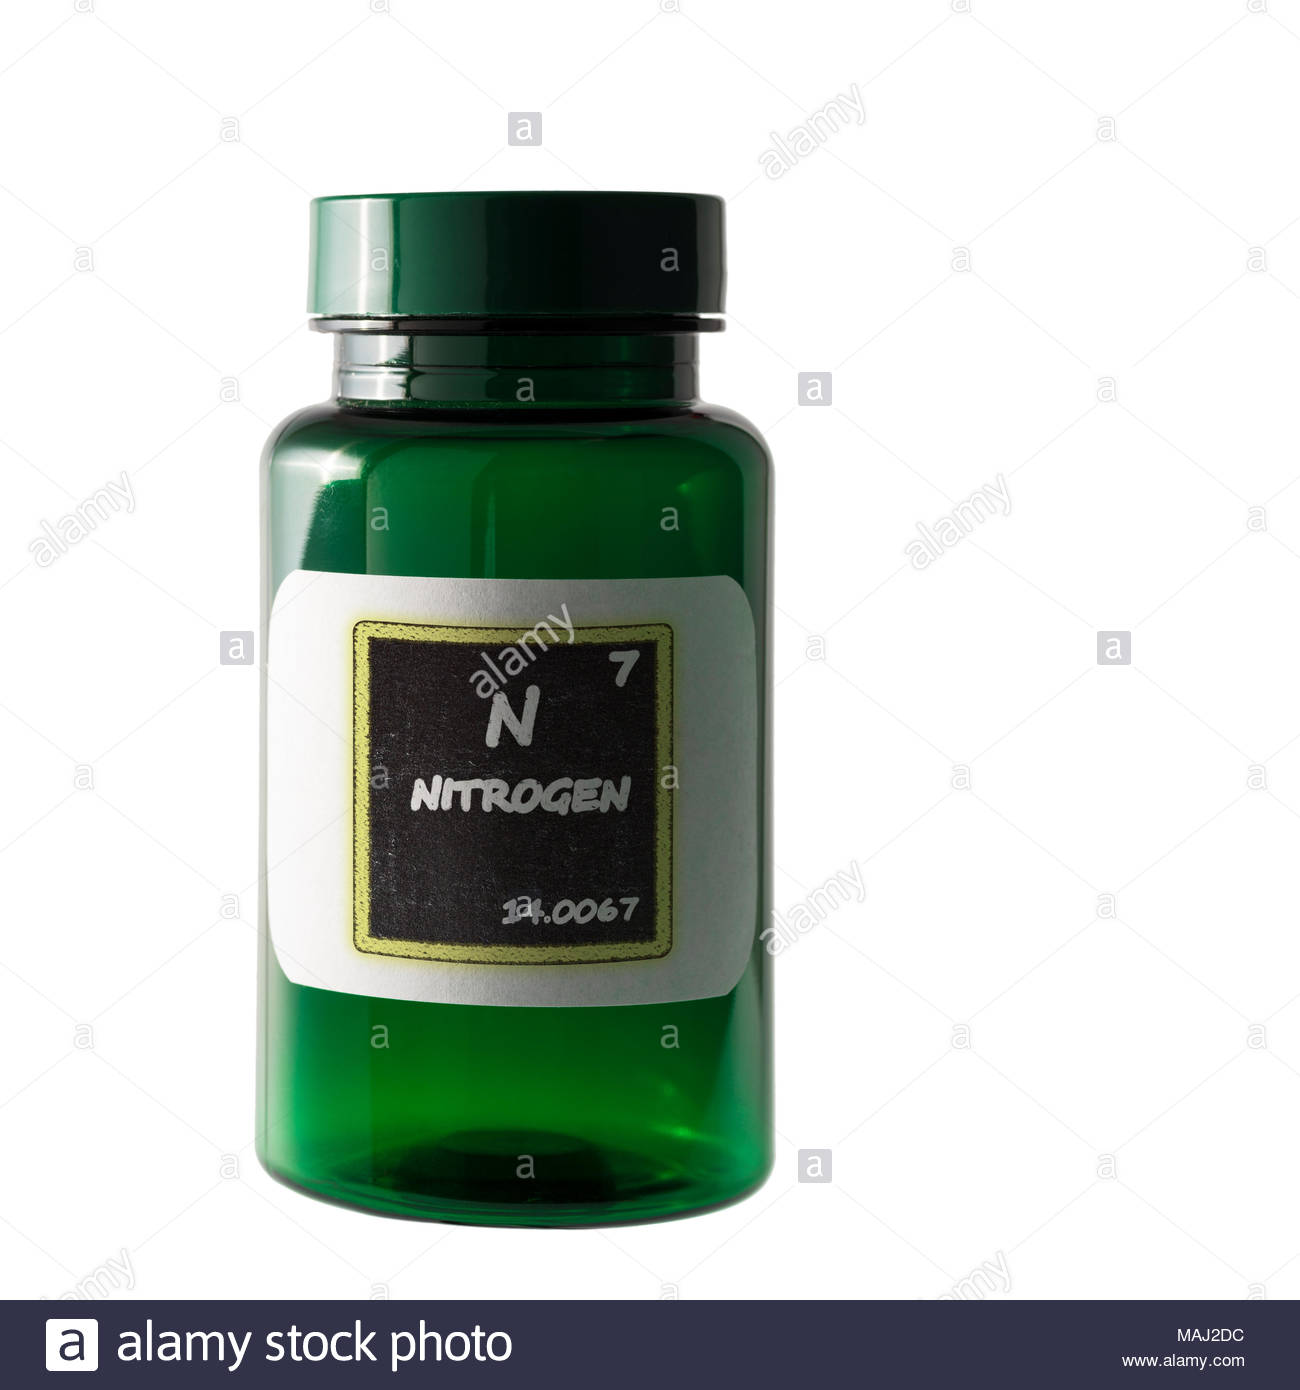 Nitrogen Periodic Table Details Shown On Bottle Label Stock Photo